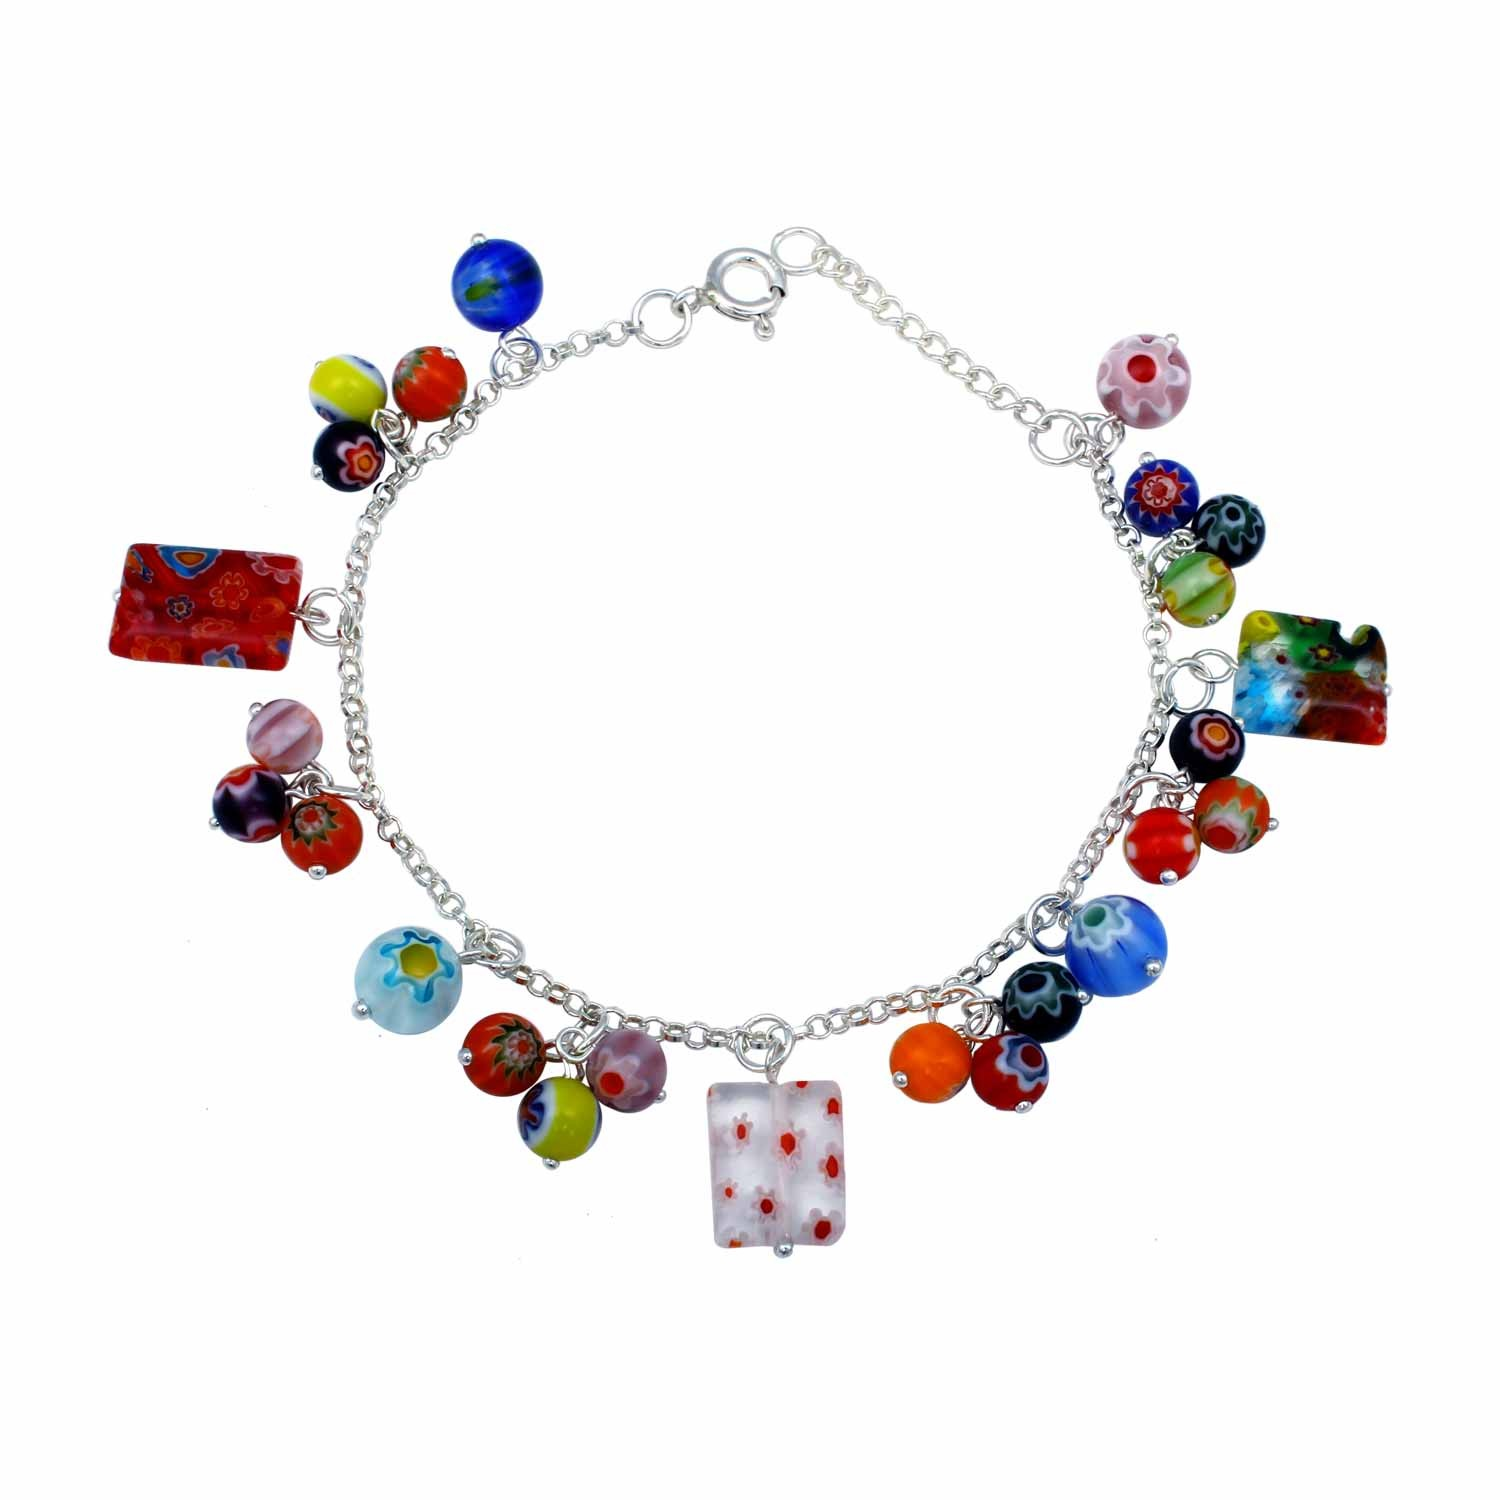 The Funky Chunky Bracelet